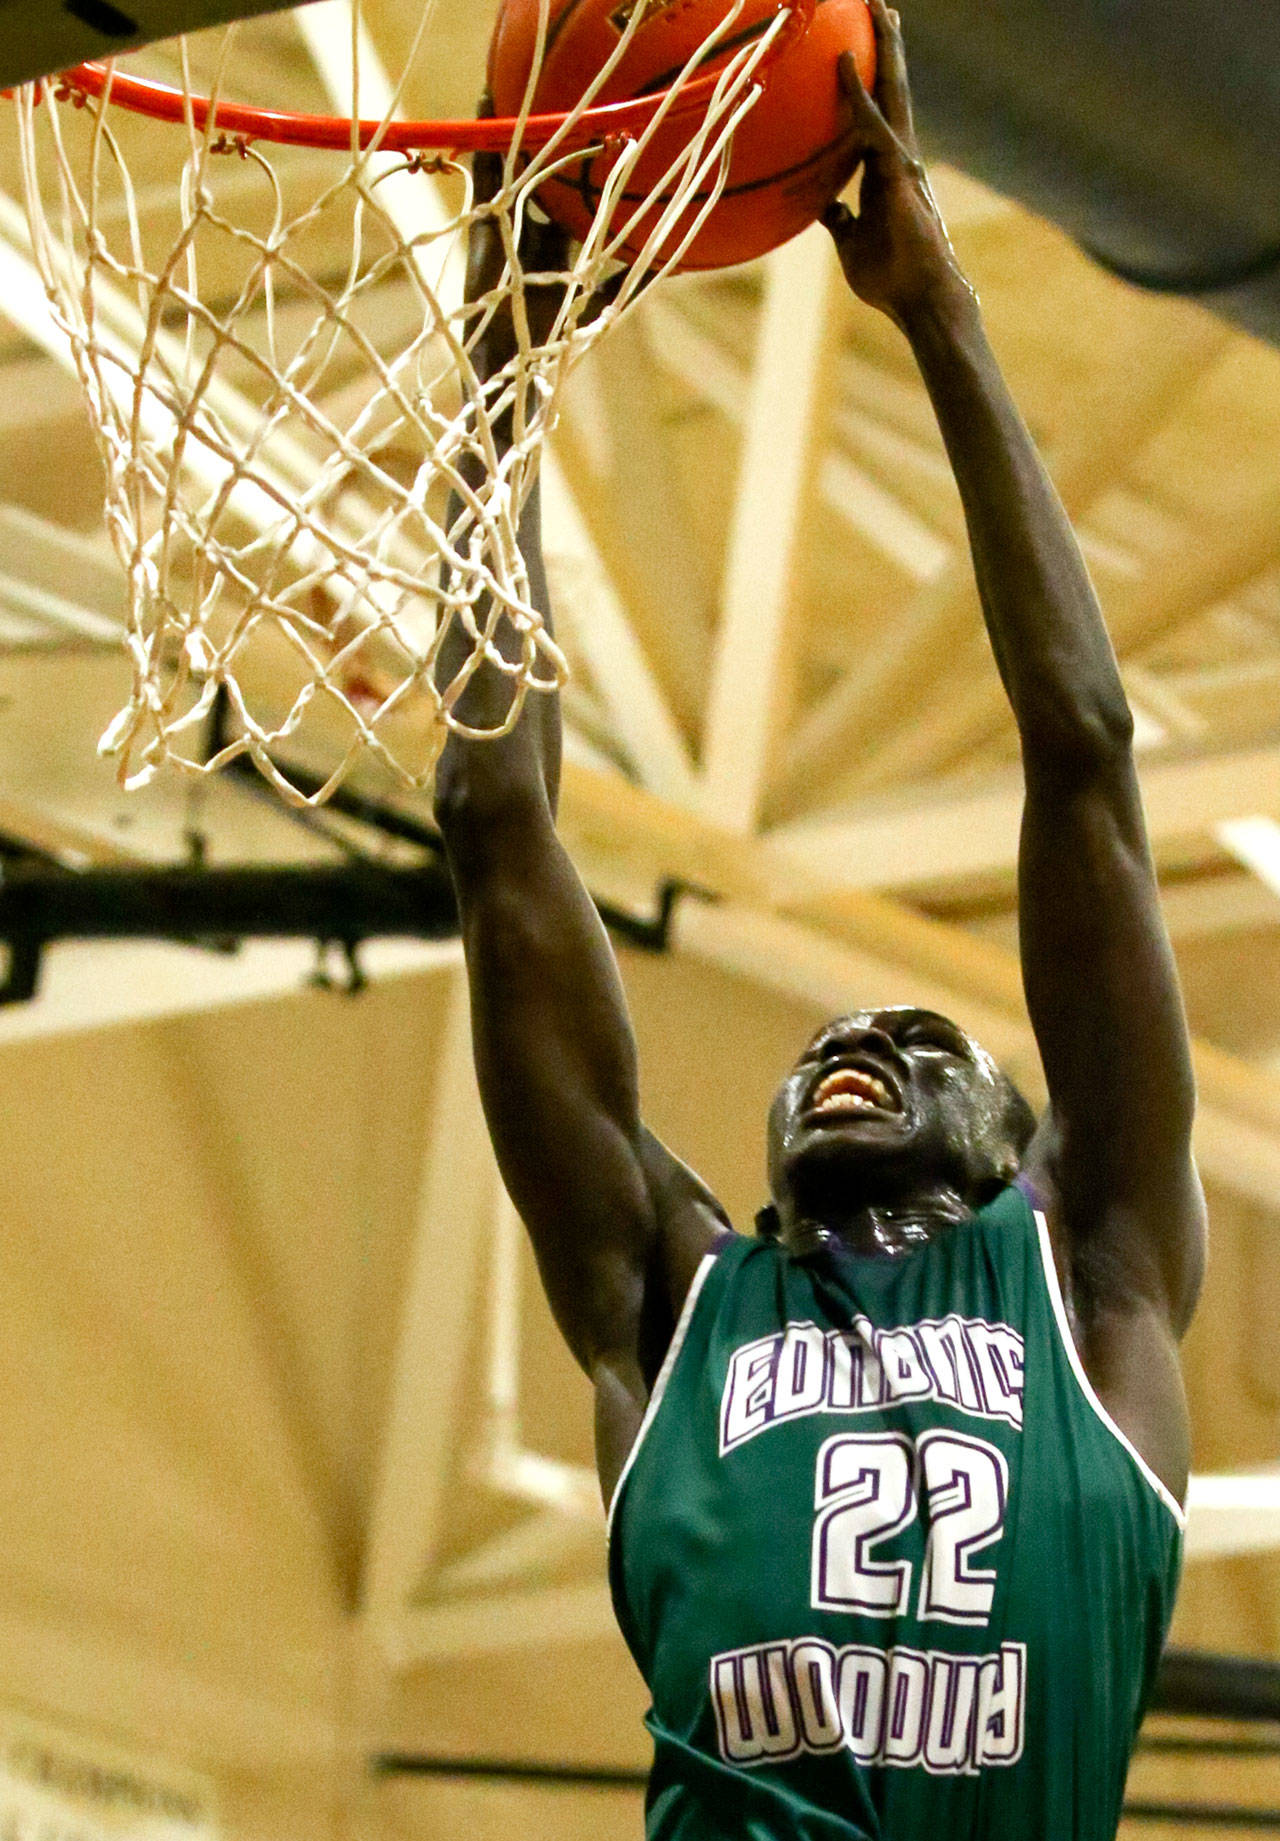 Edmonds-Woodway senior Mutdung Bol goes for a dunk. (Kevin Clark / The Herald)